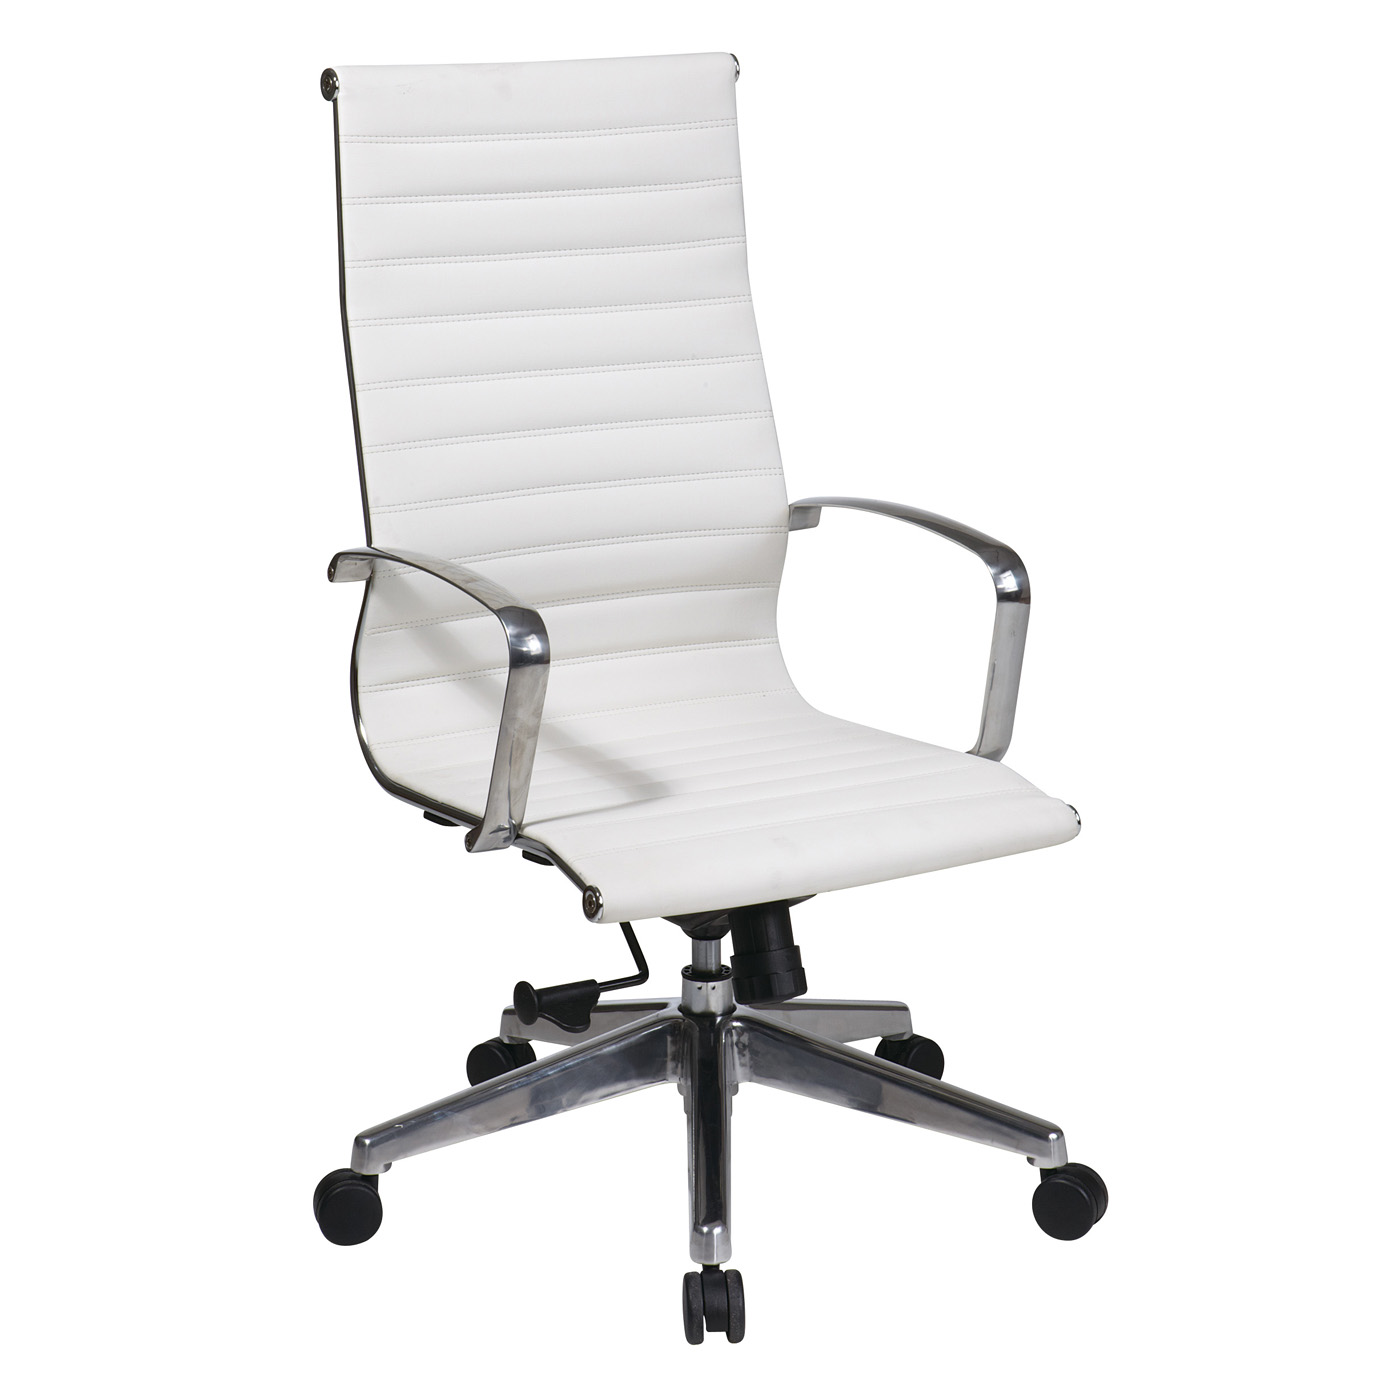 Demand for white office chair